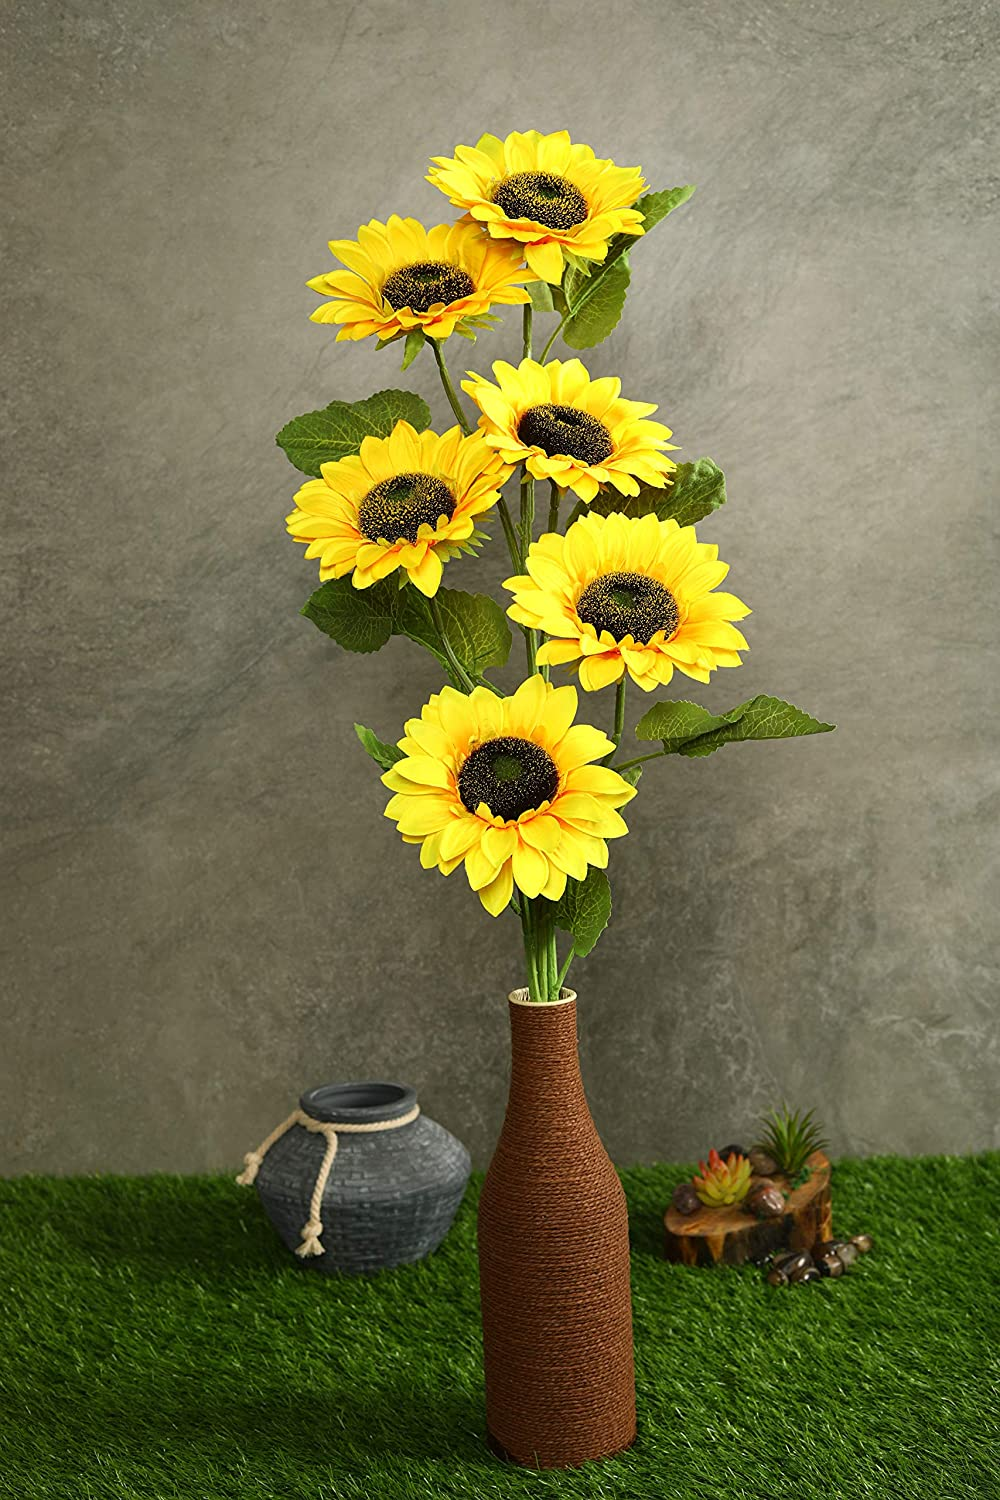 PolliNation Decorative Natural Looking Artificial Yellow Sunflower for Indoor Deocration (Pack of 2, 36 Inch) - Artificial Flowers & Plants - PolliNation